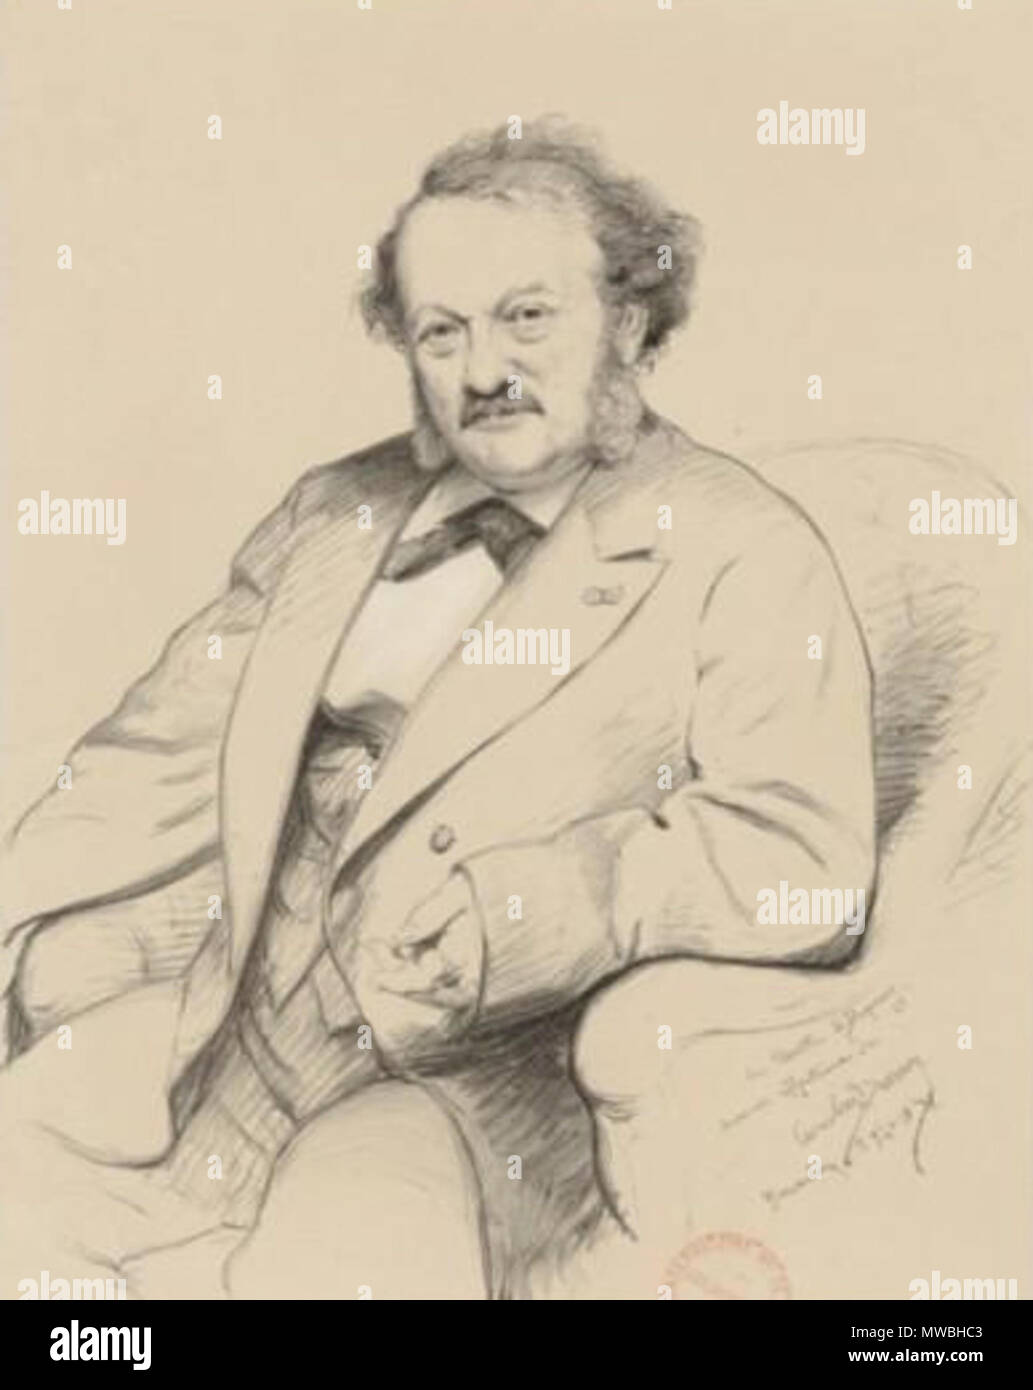 . English: French tenor Gilbert Duprez (1806-1898) by Alfred Lemoine (1824-1881) after a drawing by Carolus-Duran (1837-1917). 1871. Alfred Lemoine after Carolus-Duran 243 Gilbert Duprez par Carolus-Duran - Stock Image